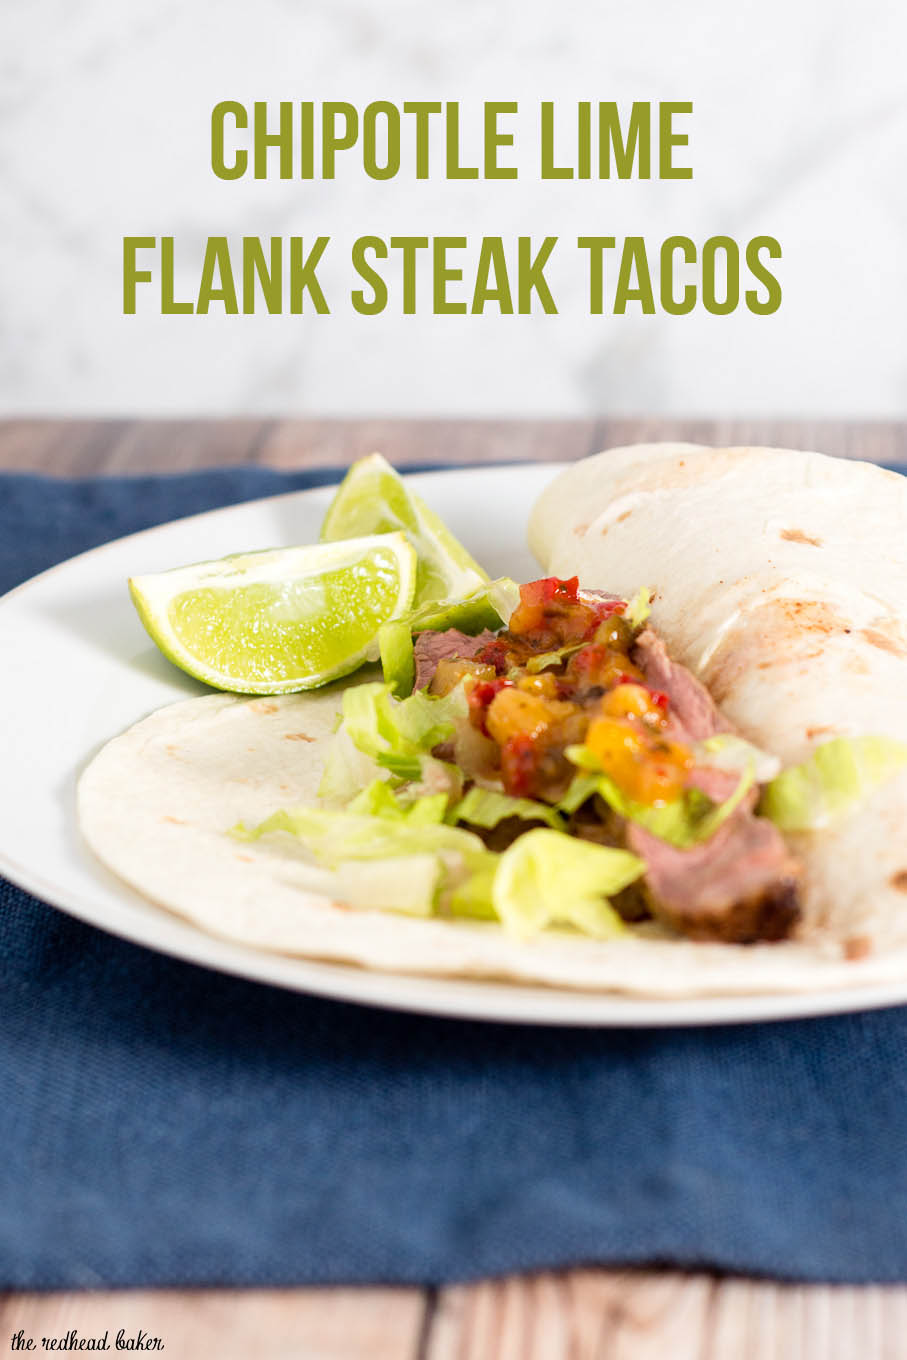 Flank steak tacos use a lean cut of beef, tenderized with a chile-lime  marinade, as taco filling in soft tortillas, topped with shredded lettuce  and ...